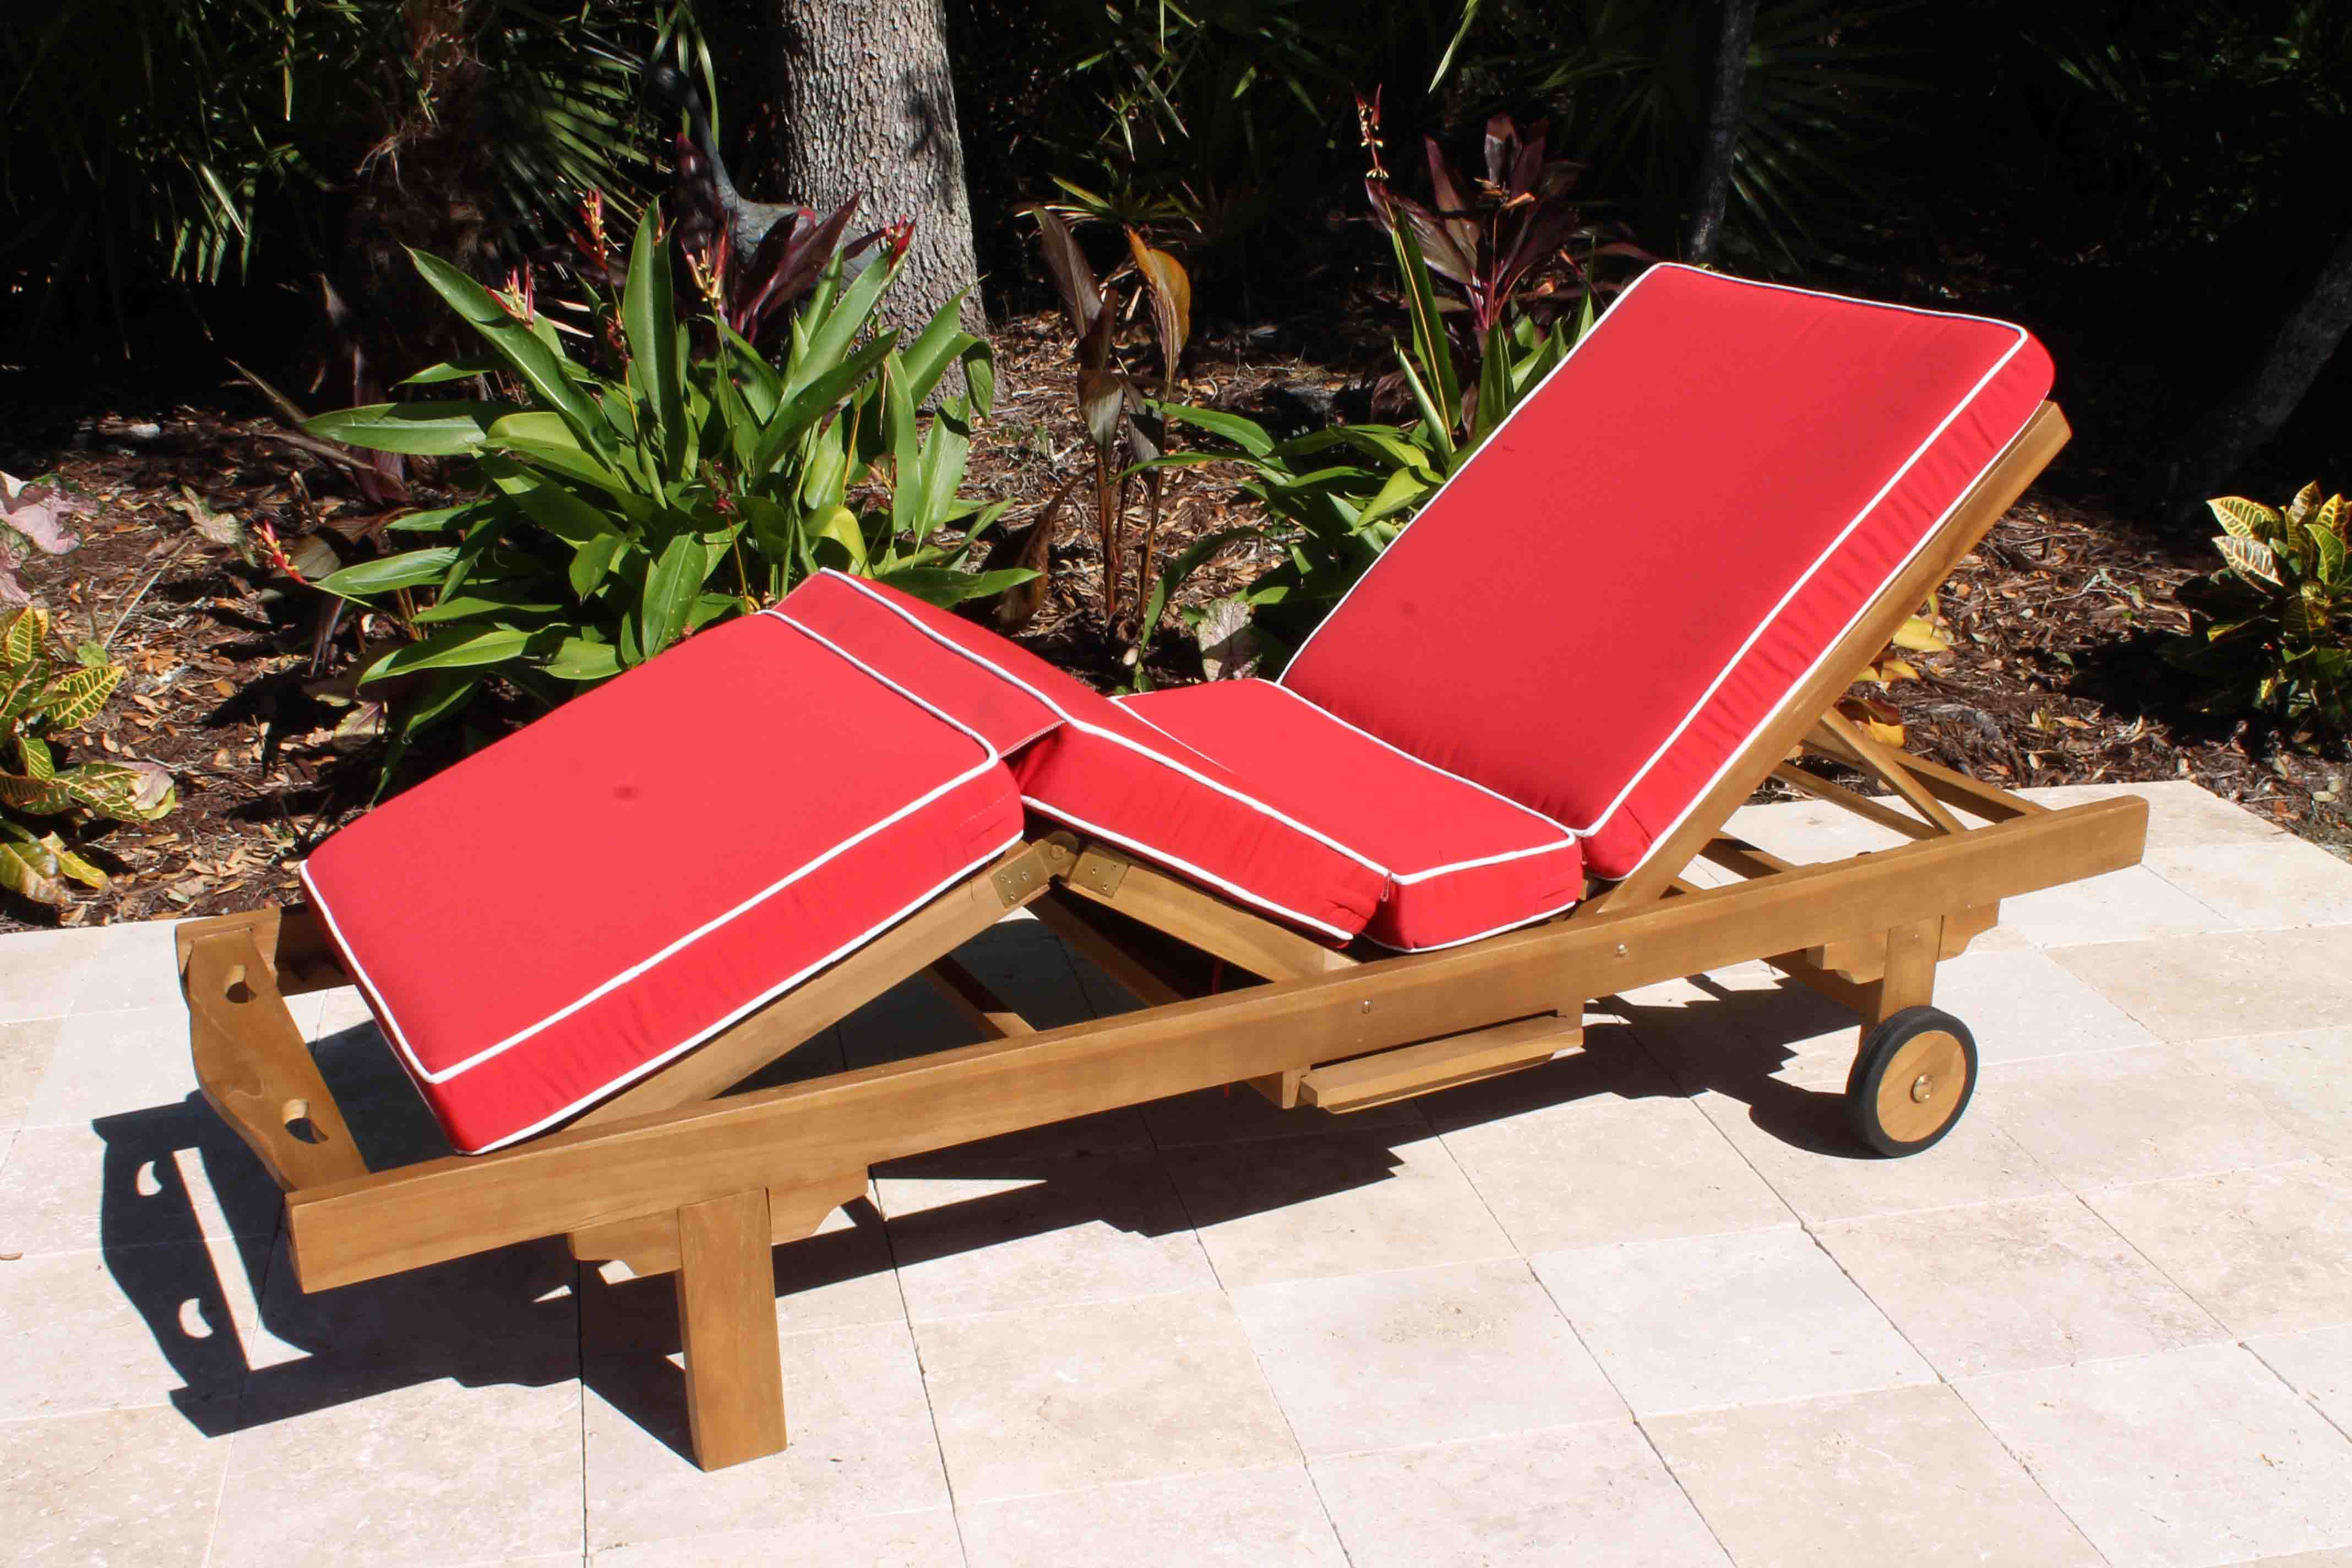 Sunbrella Fabric Deluxe Lounger Cushion Oceanic Teak Furniture